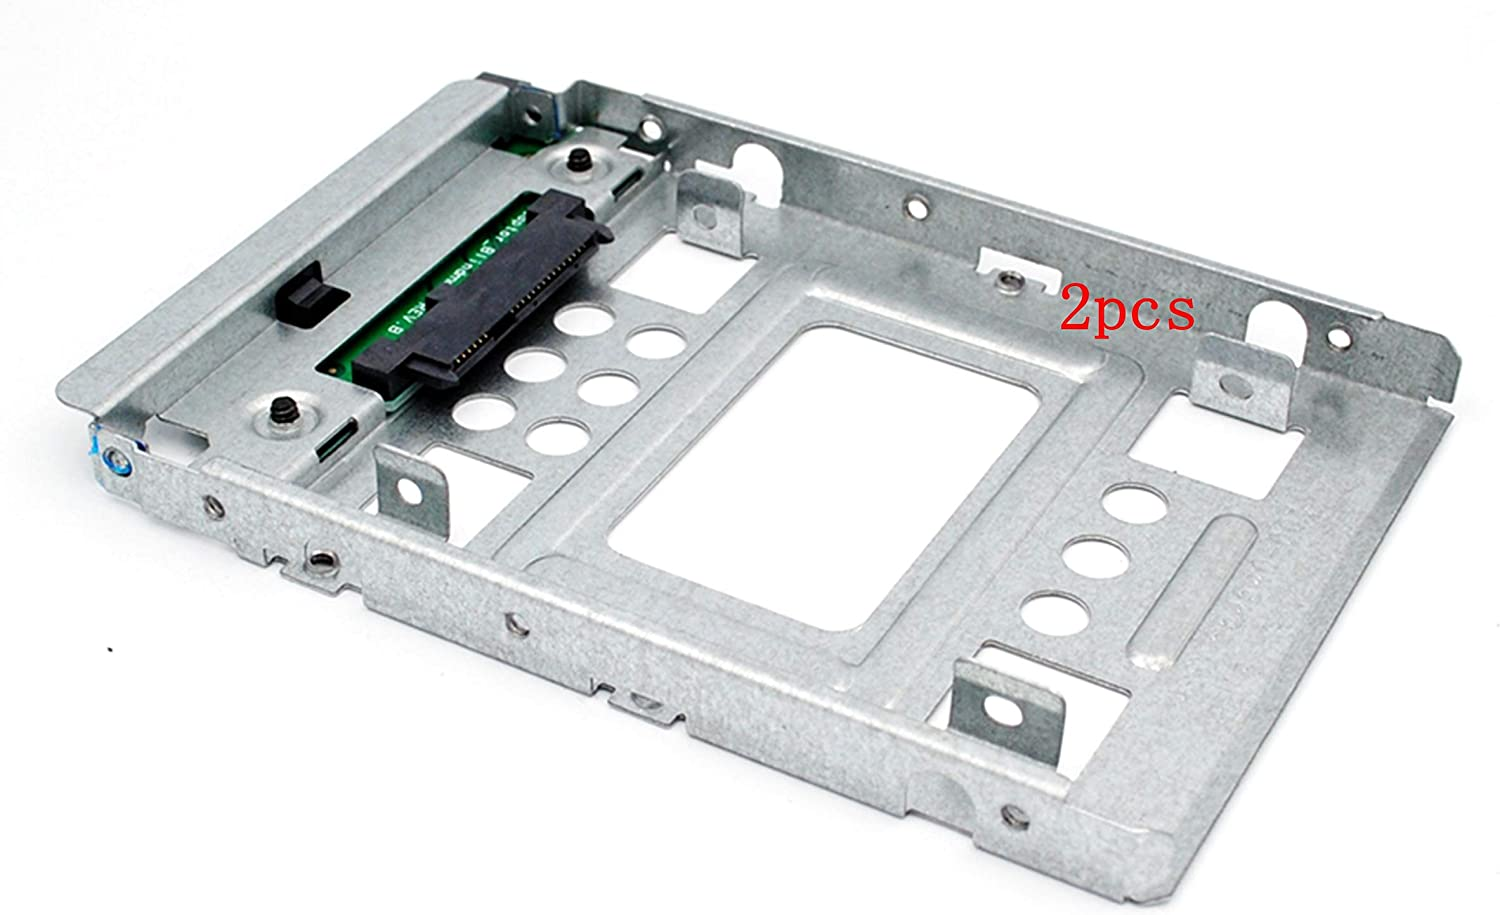 "2-pcs 2.5"" to 3.5"" SSD Sata Hard Disk Drive HDD Adapter Caddy Tray Cage Hot Swap Plug Converter Bracket 654540-001 for Dell kg1ch F238F for HP 651314-001 373211-001 etc."